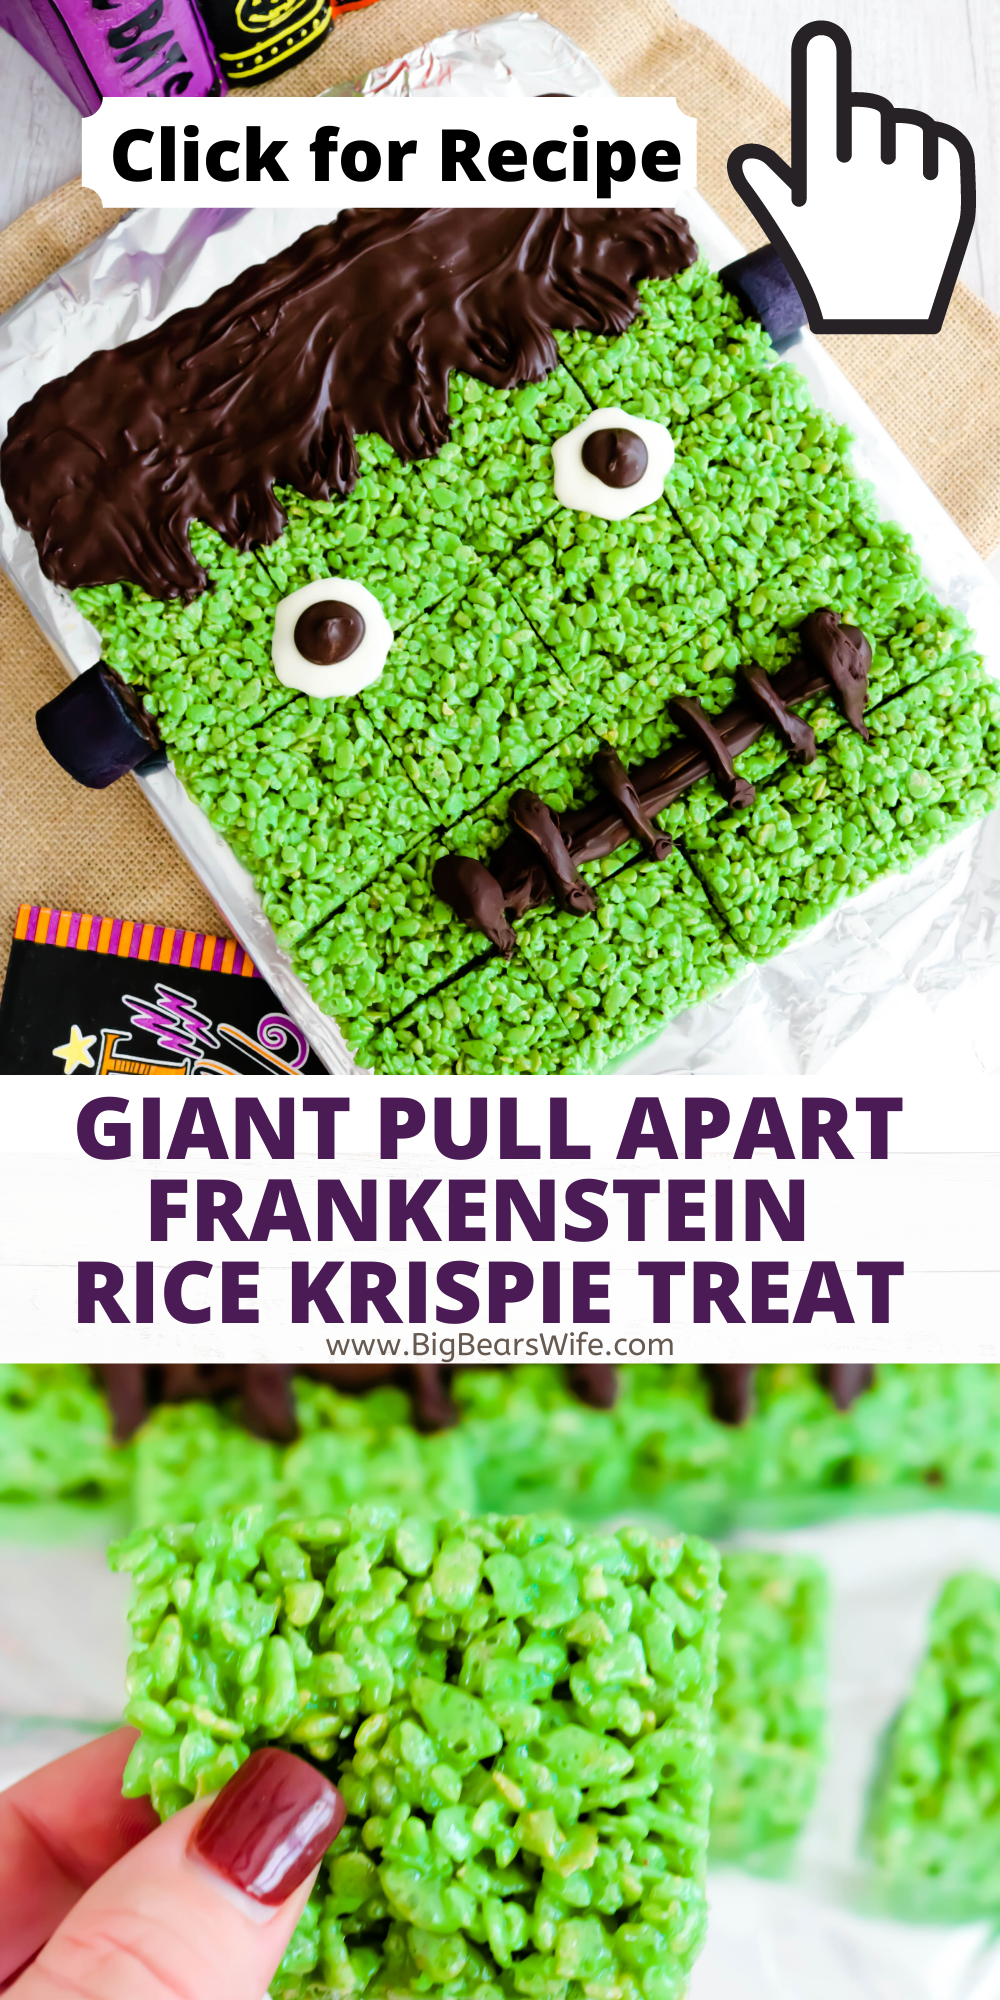 Need a fun Halloween Party dessert? This Giant Pull Apart Frankenstein Rice Krispie Treat is super easy to make and great for a group or Halloween dinner party! Just like my Frankenstein Rice Krispie Treats but on a larger scale for a crowd! via @bigbearswife